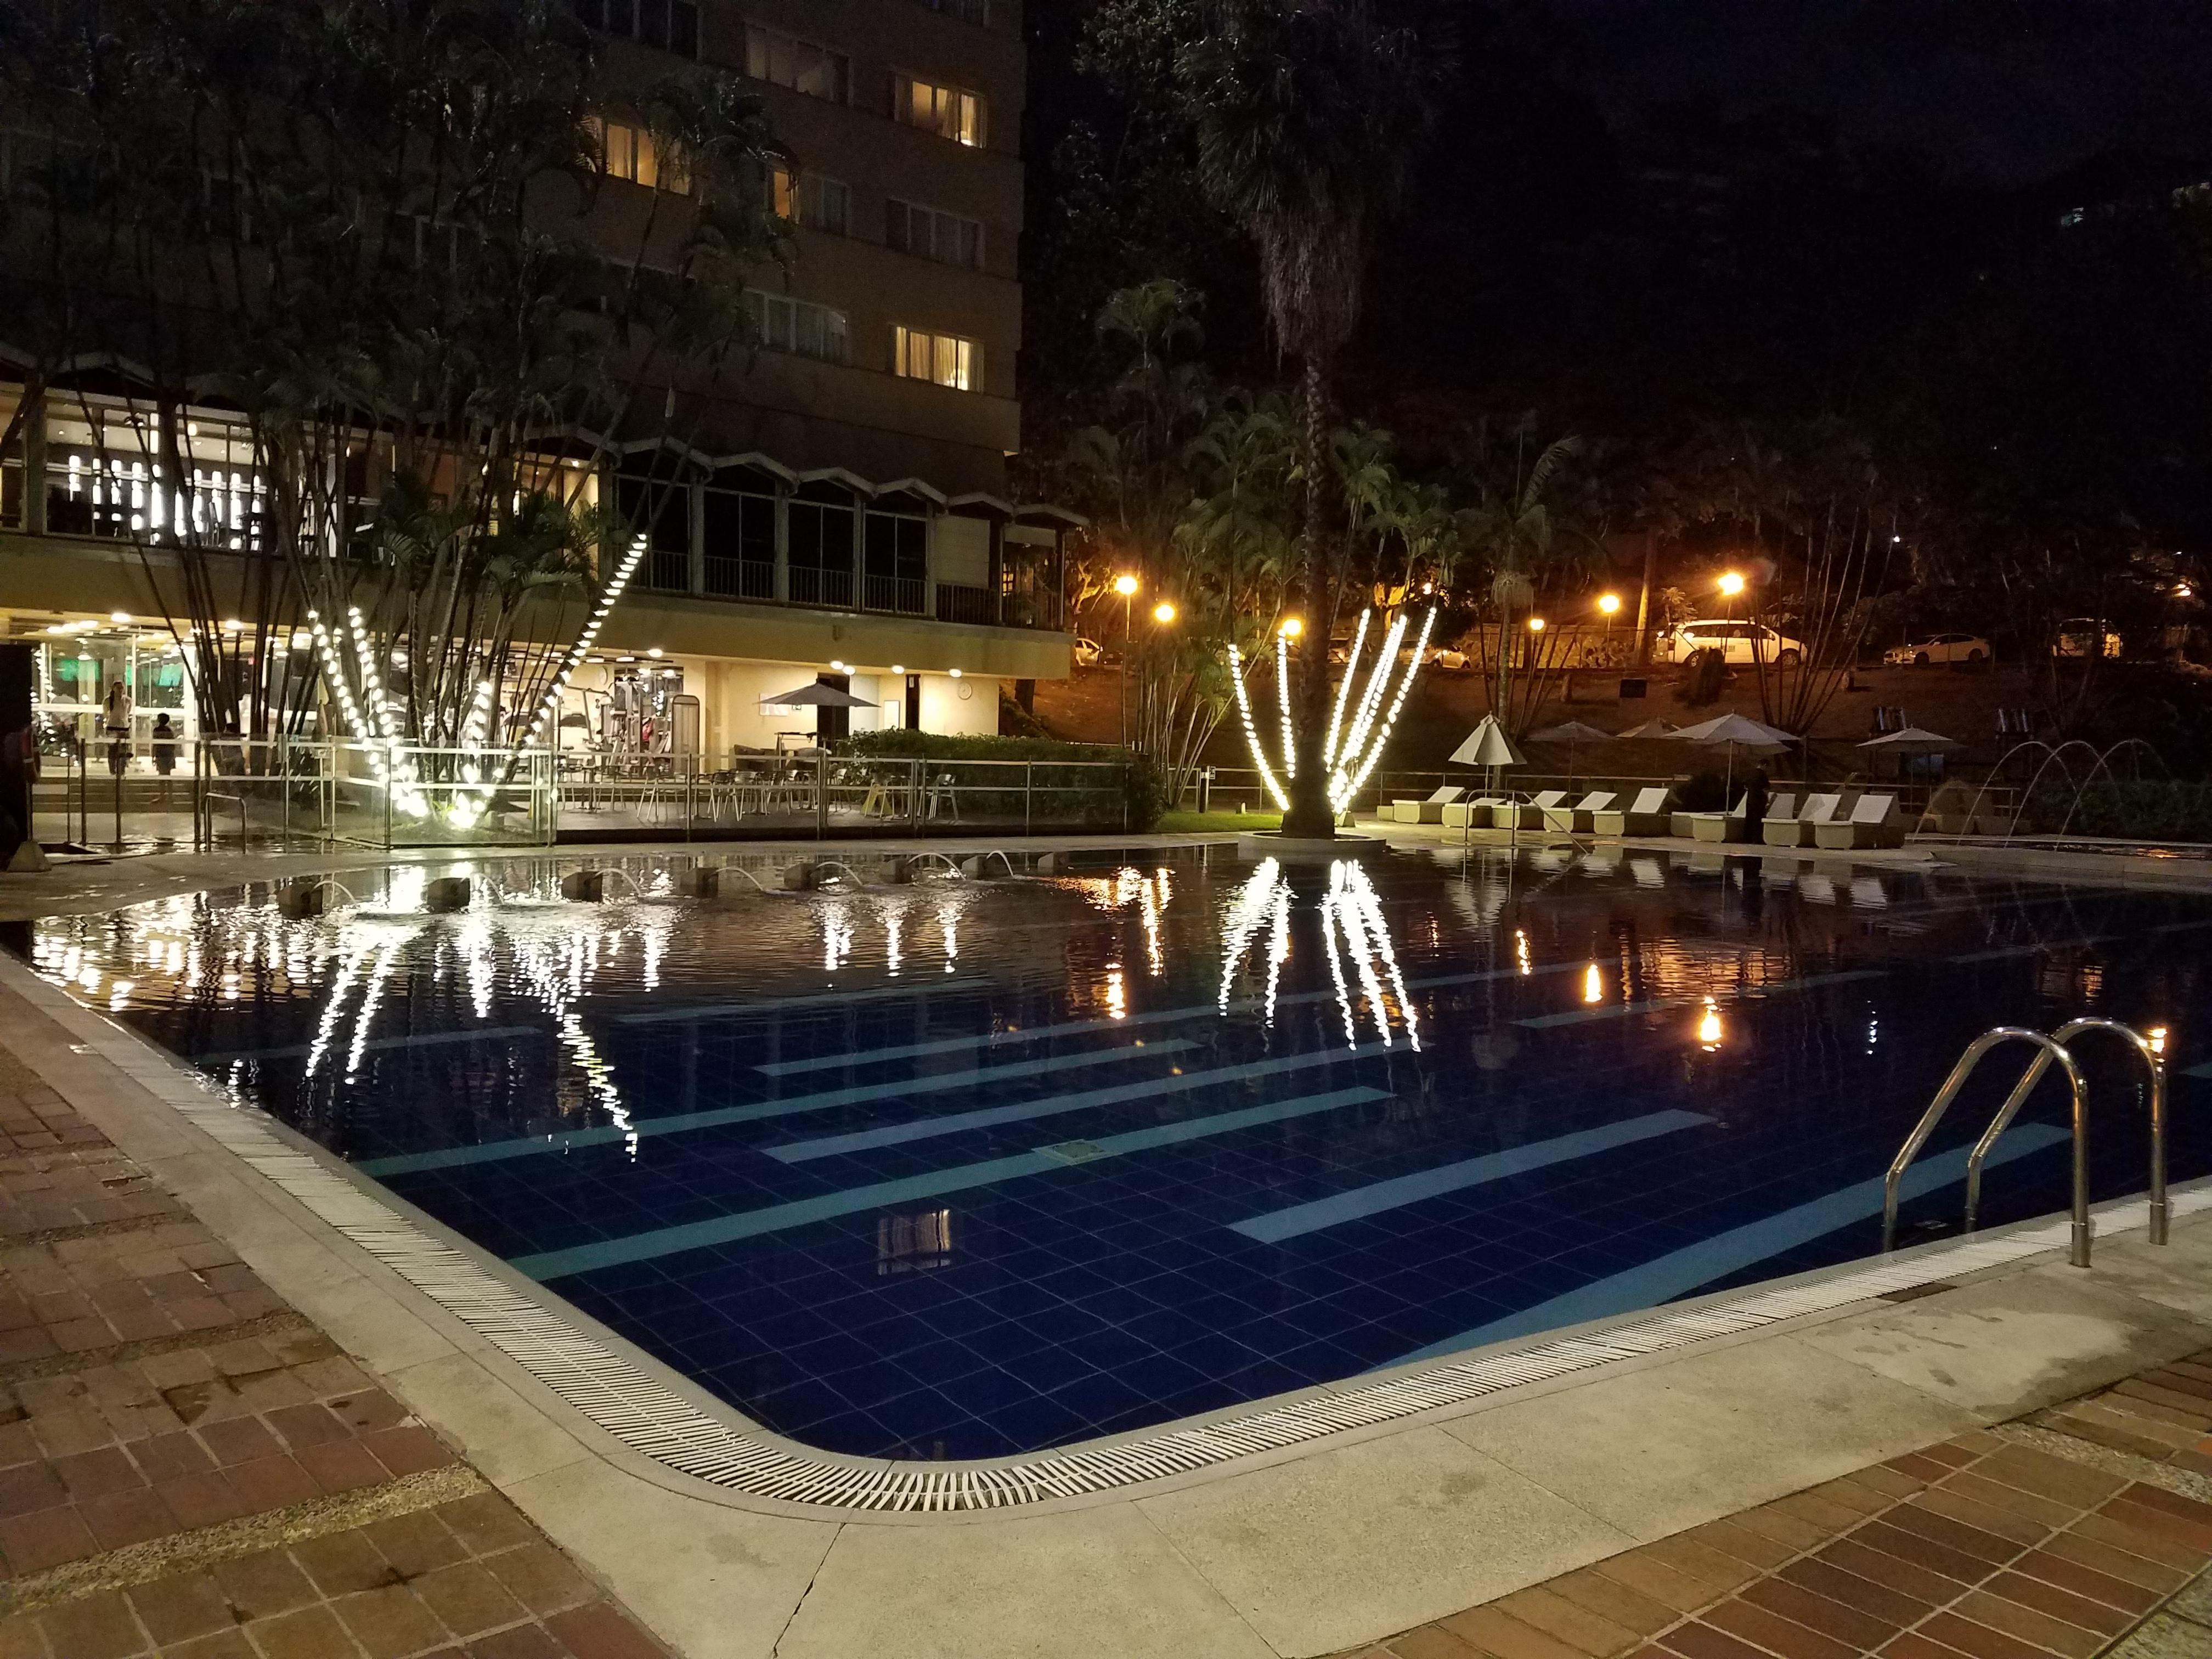 The pool at night.